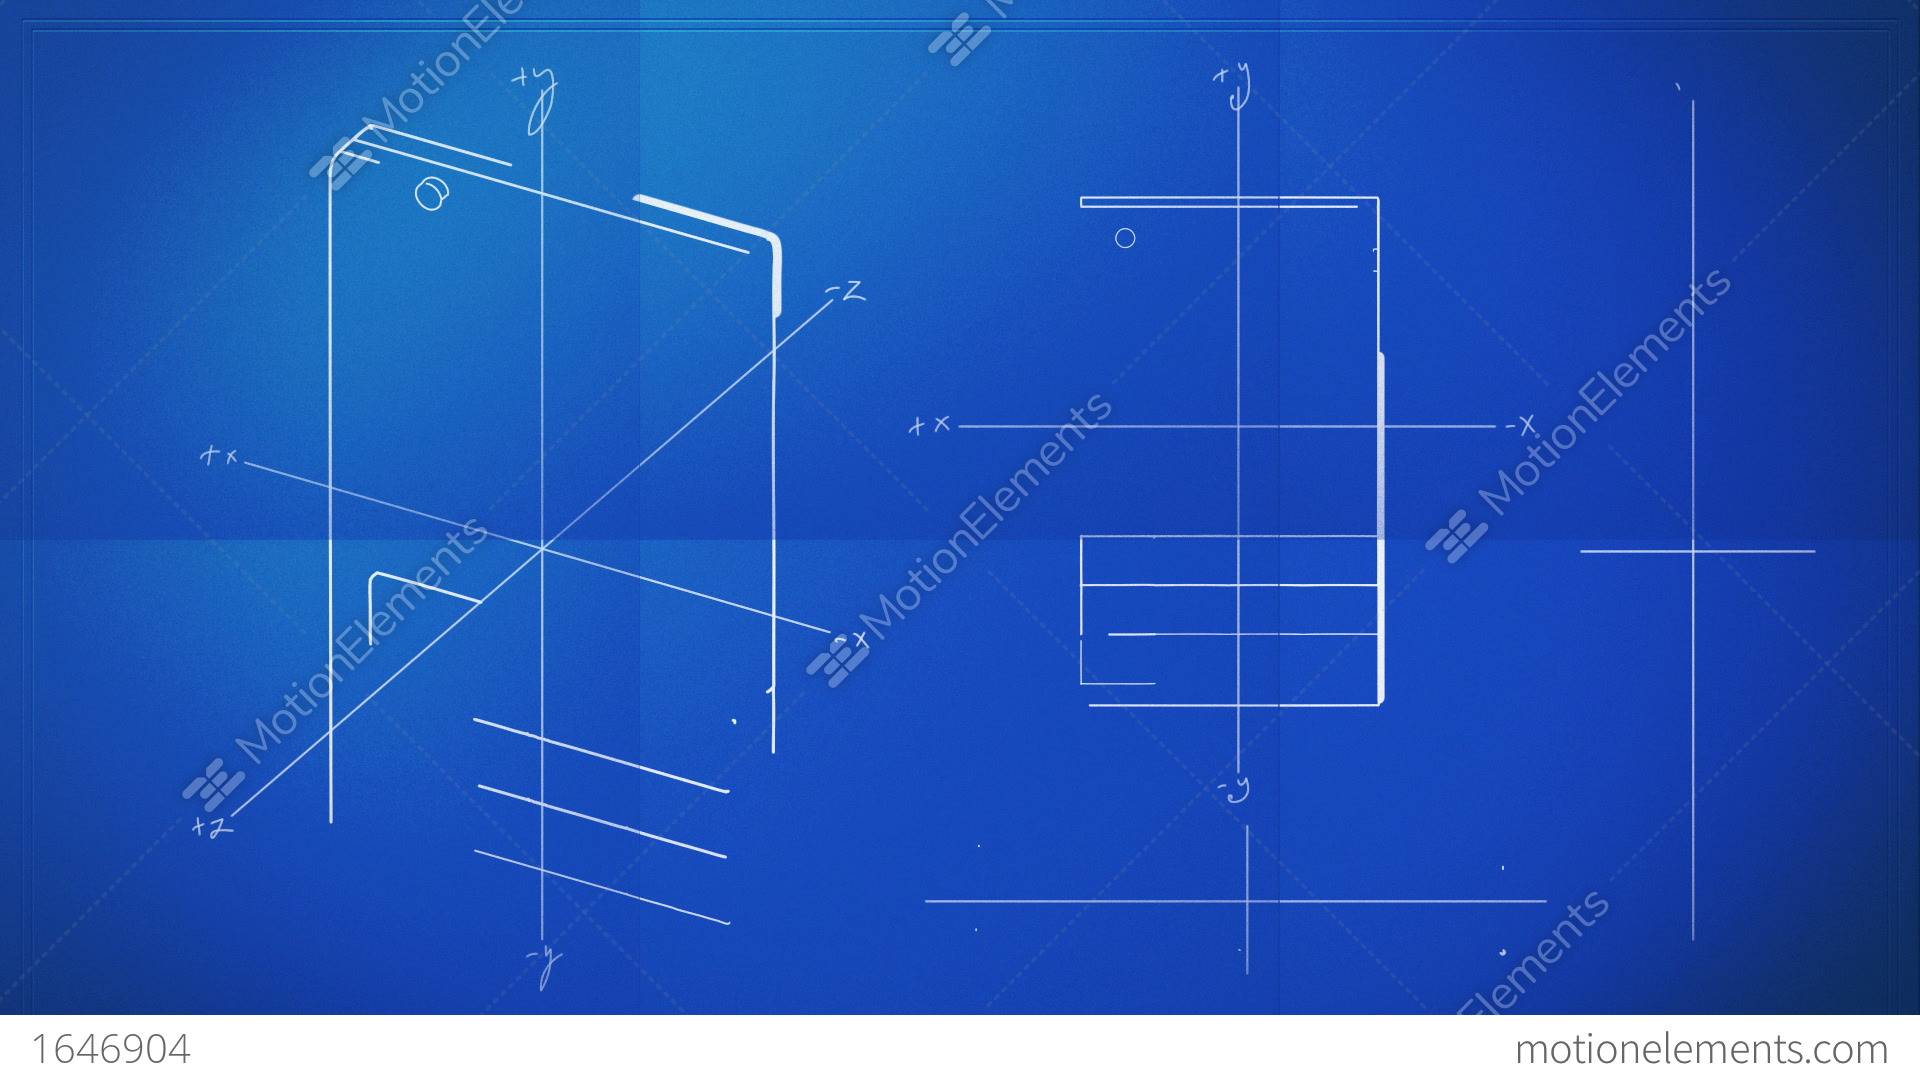 How to draw a blueprint library system sample map of new york classic smartphone technical drawing blueprint stock animation me1646904 classic smartphone technical drawing blueprint hd a0156 stock malvernweather Images